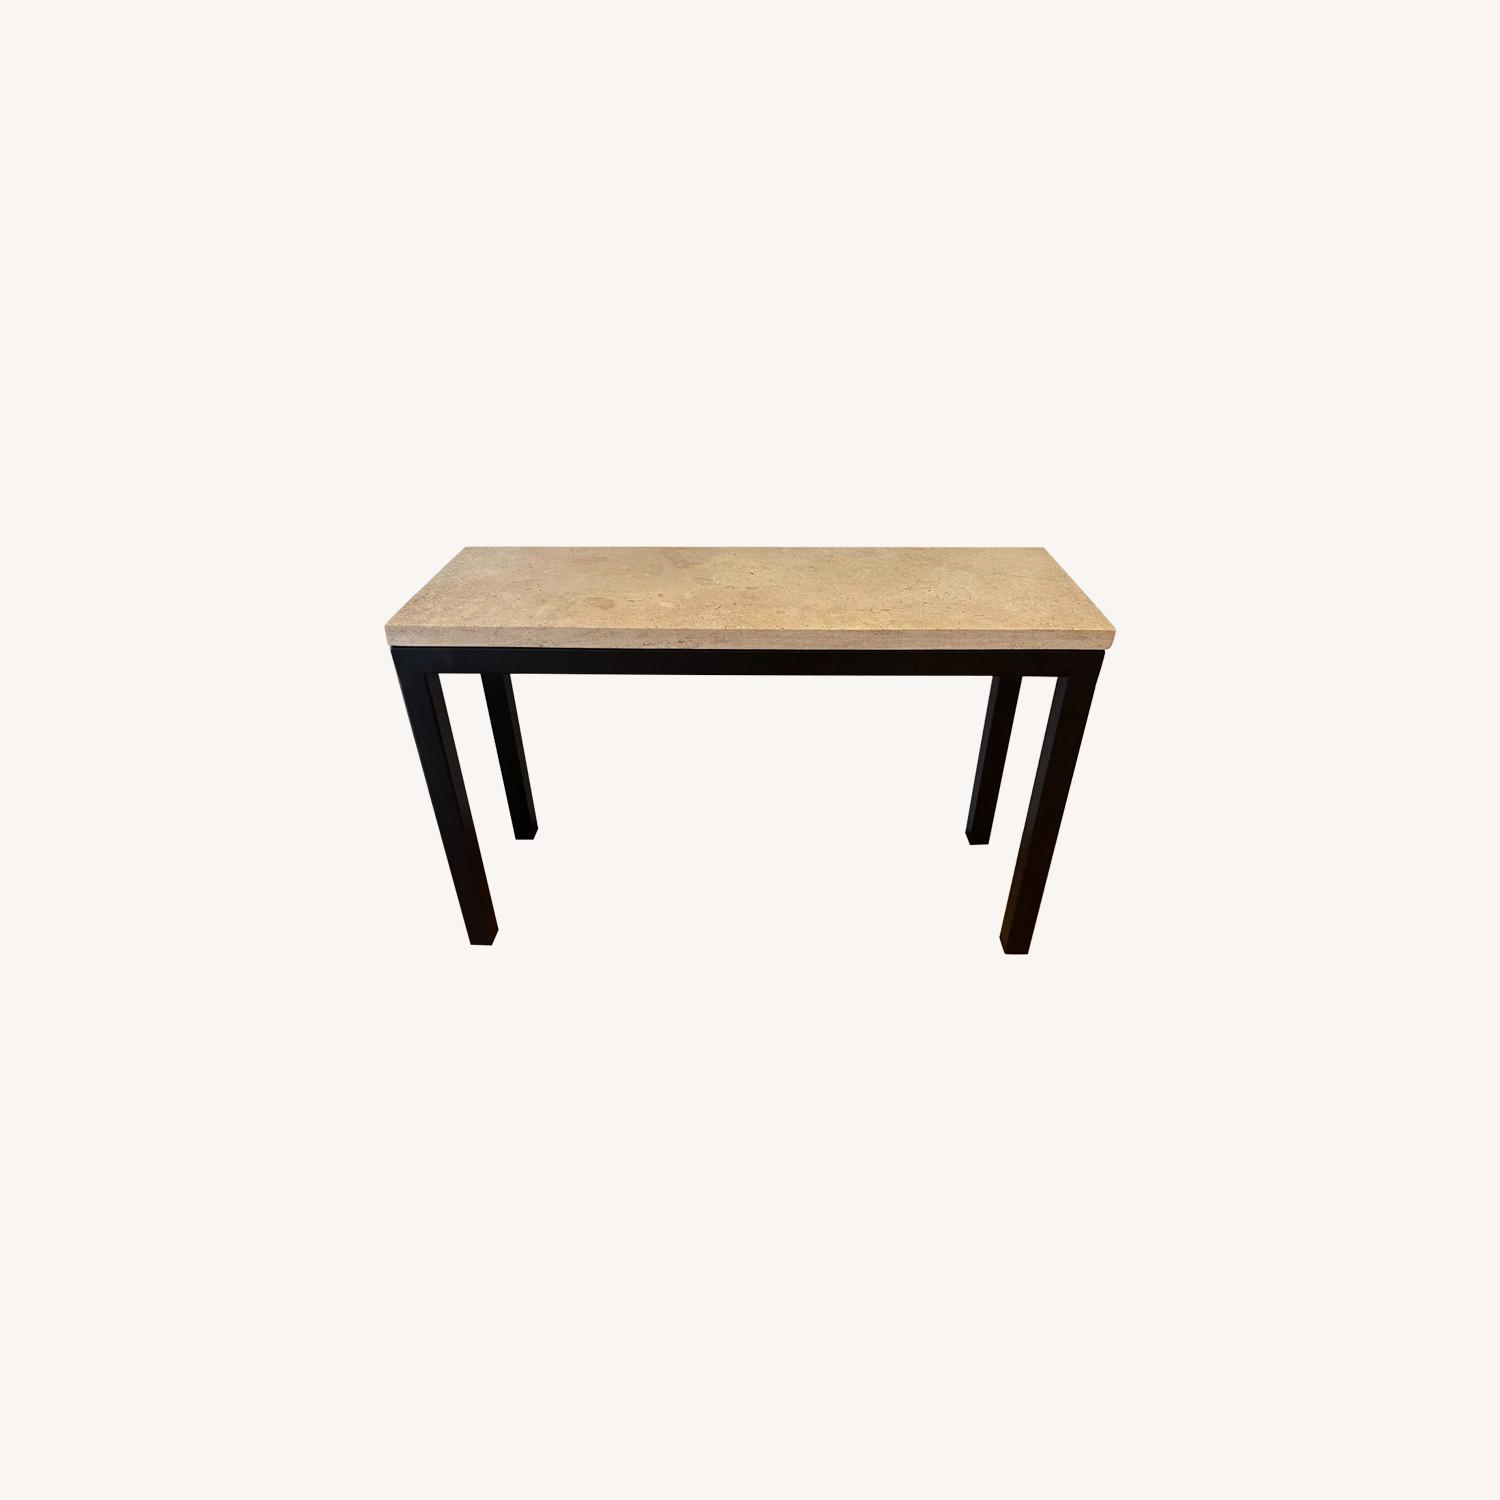 Crate & Barrel Parsons Console Table - image-0